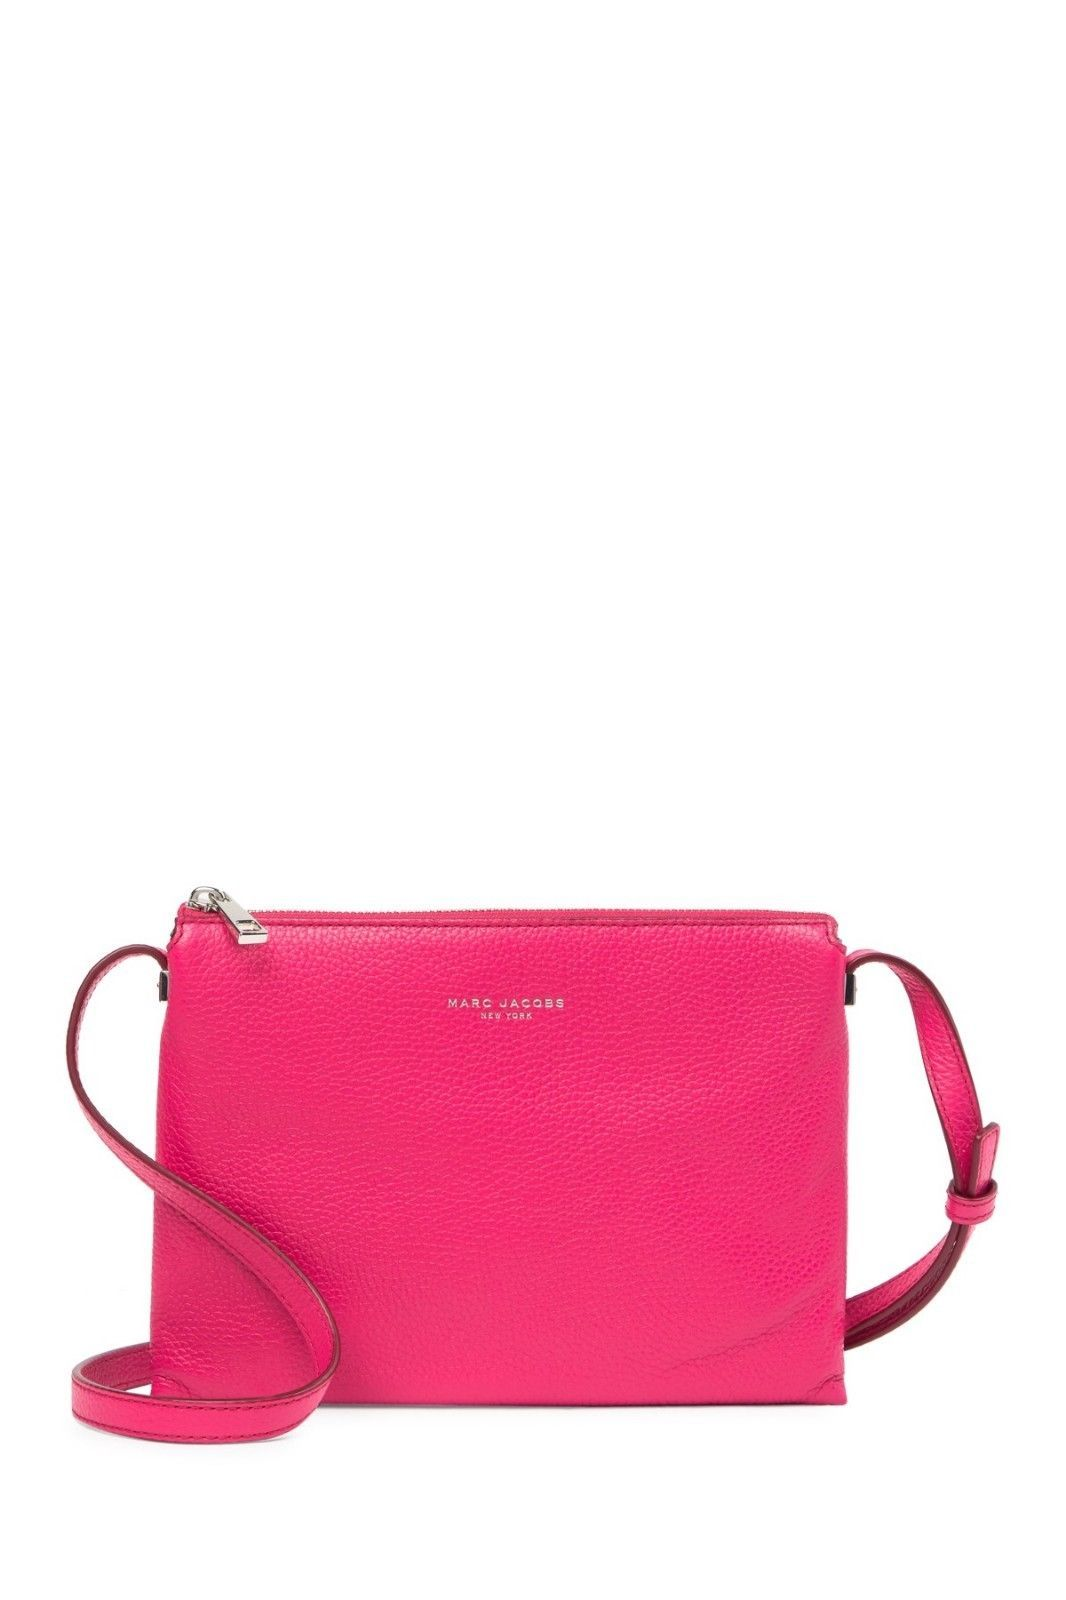 50ff5f4df300 Marc Jacobs Leather Crossbody Bag MSRP   275.00 -  188.09